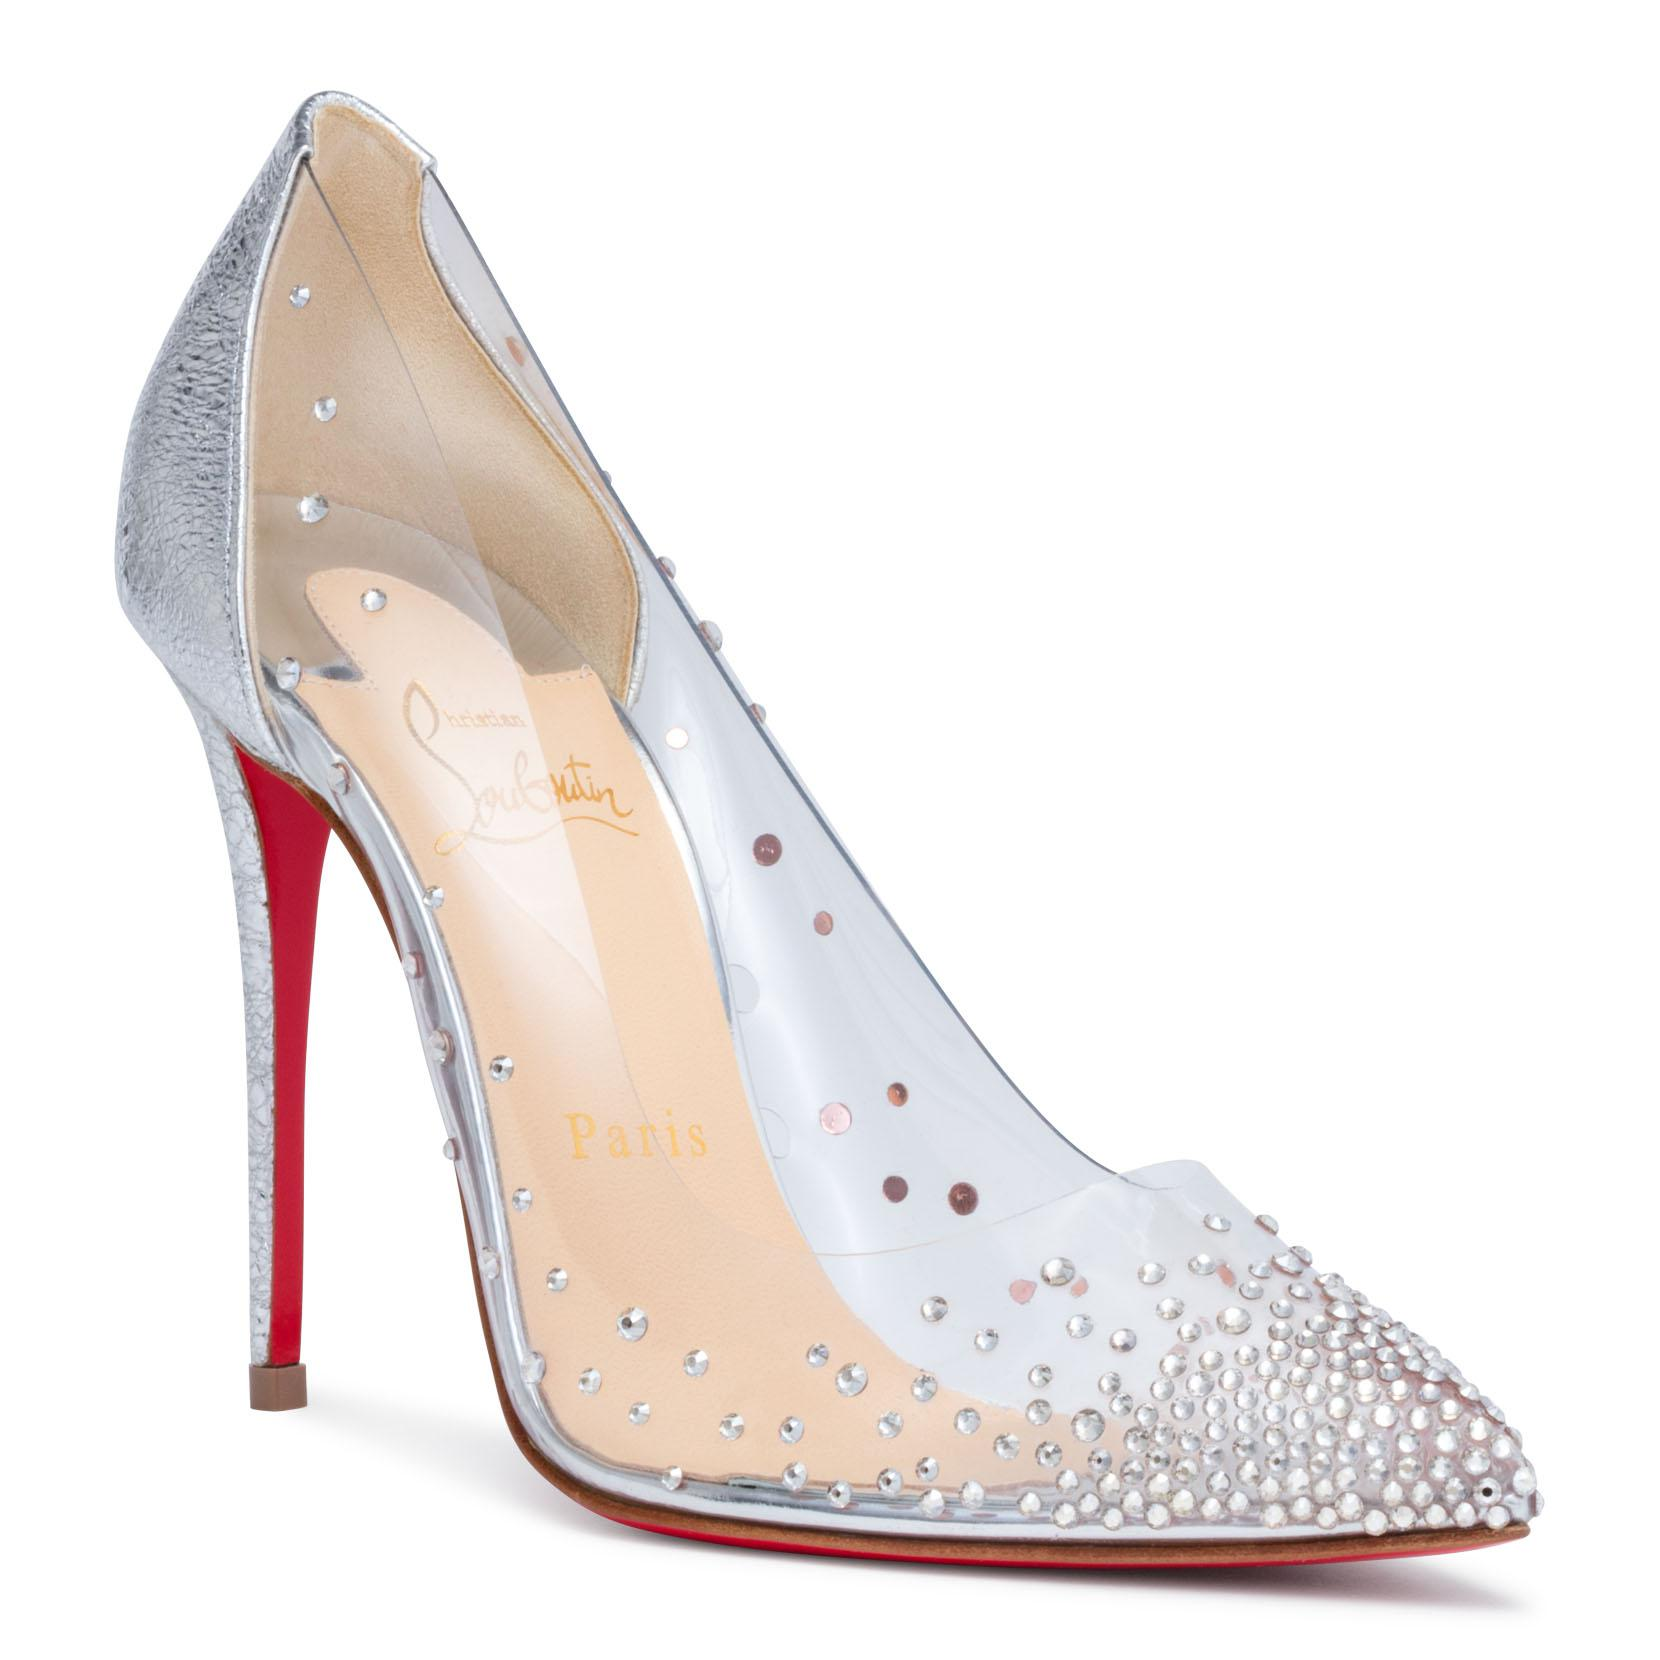 c14a553f73c2 Lyst - Christian Louboutin Degrastrass 100 Silver Patent Pumps in ...